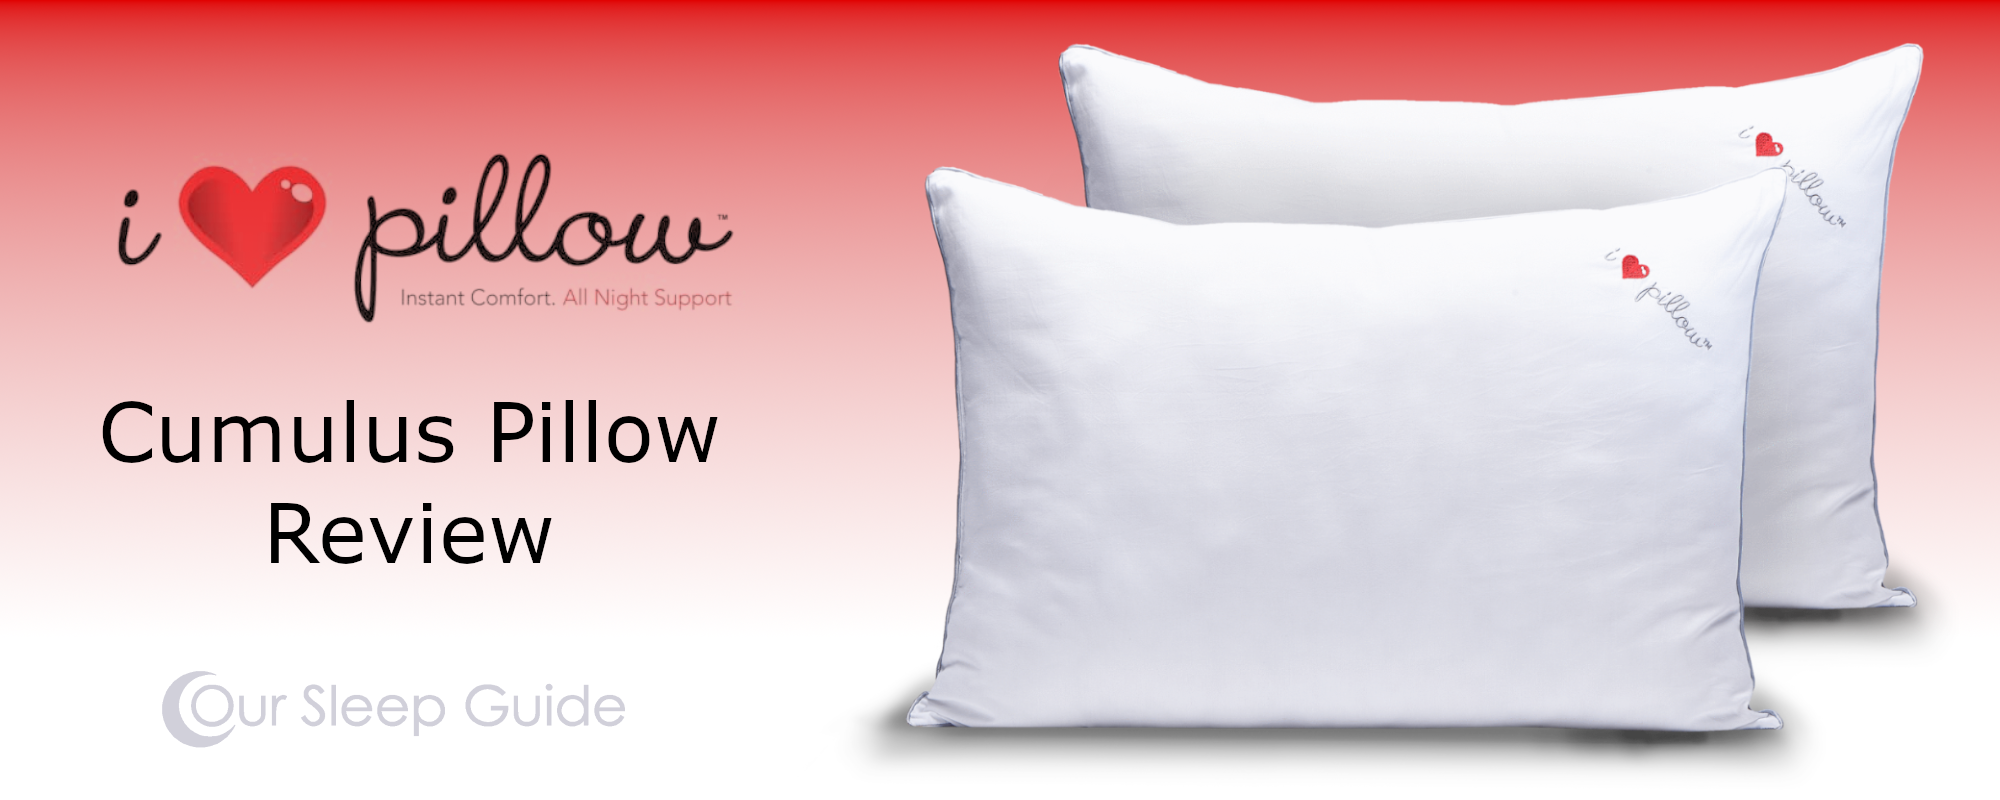 the cumulus pillow review from our sleep guide